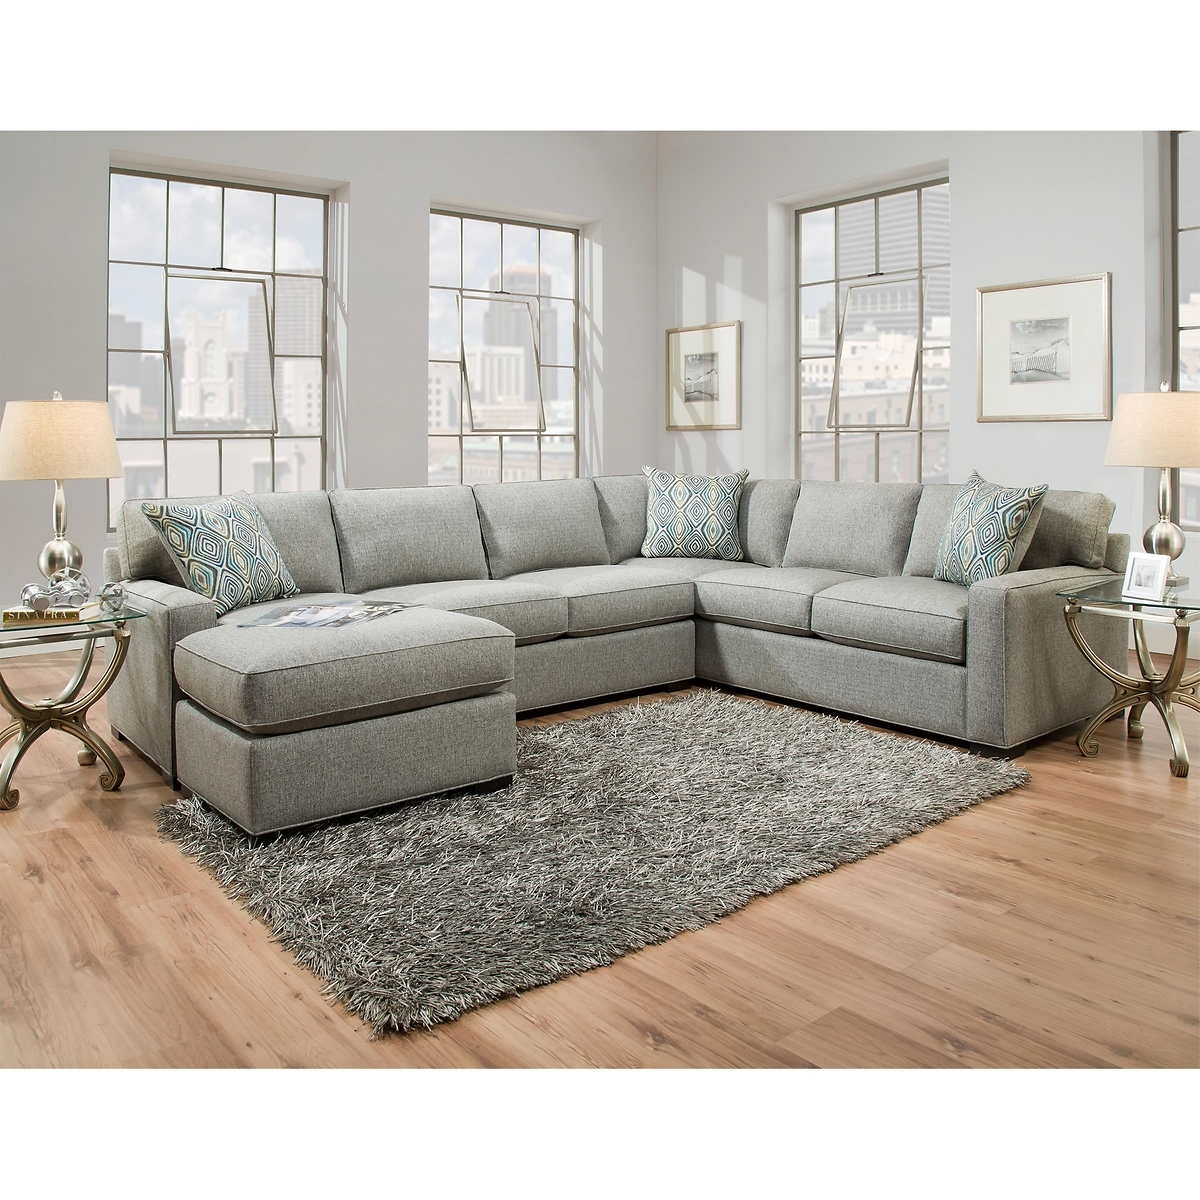 Costco Sofas Sectionals – Hotelsbacau Pertaining To Raleigh Sectional Sofas (View 1 of 10)